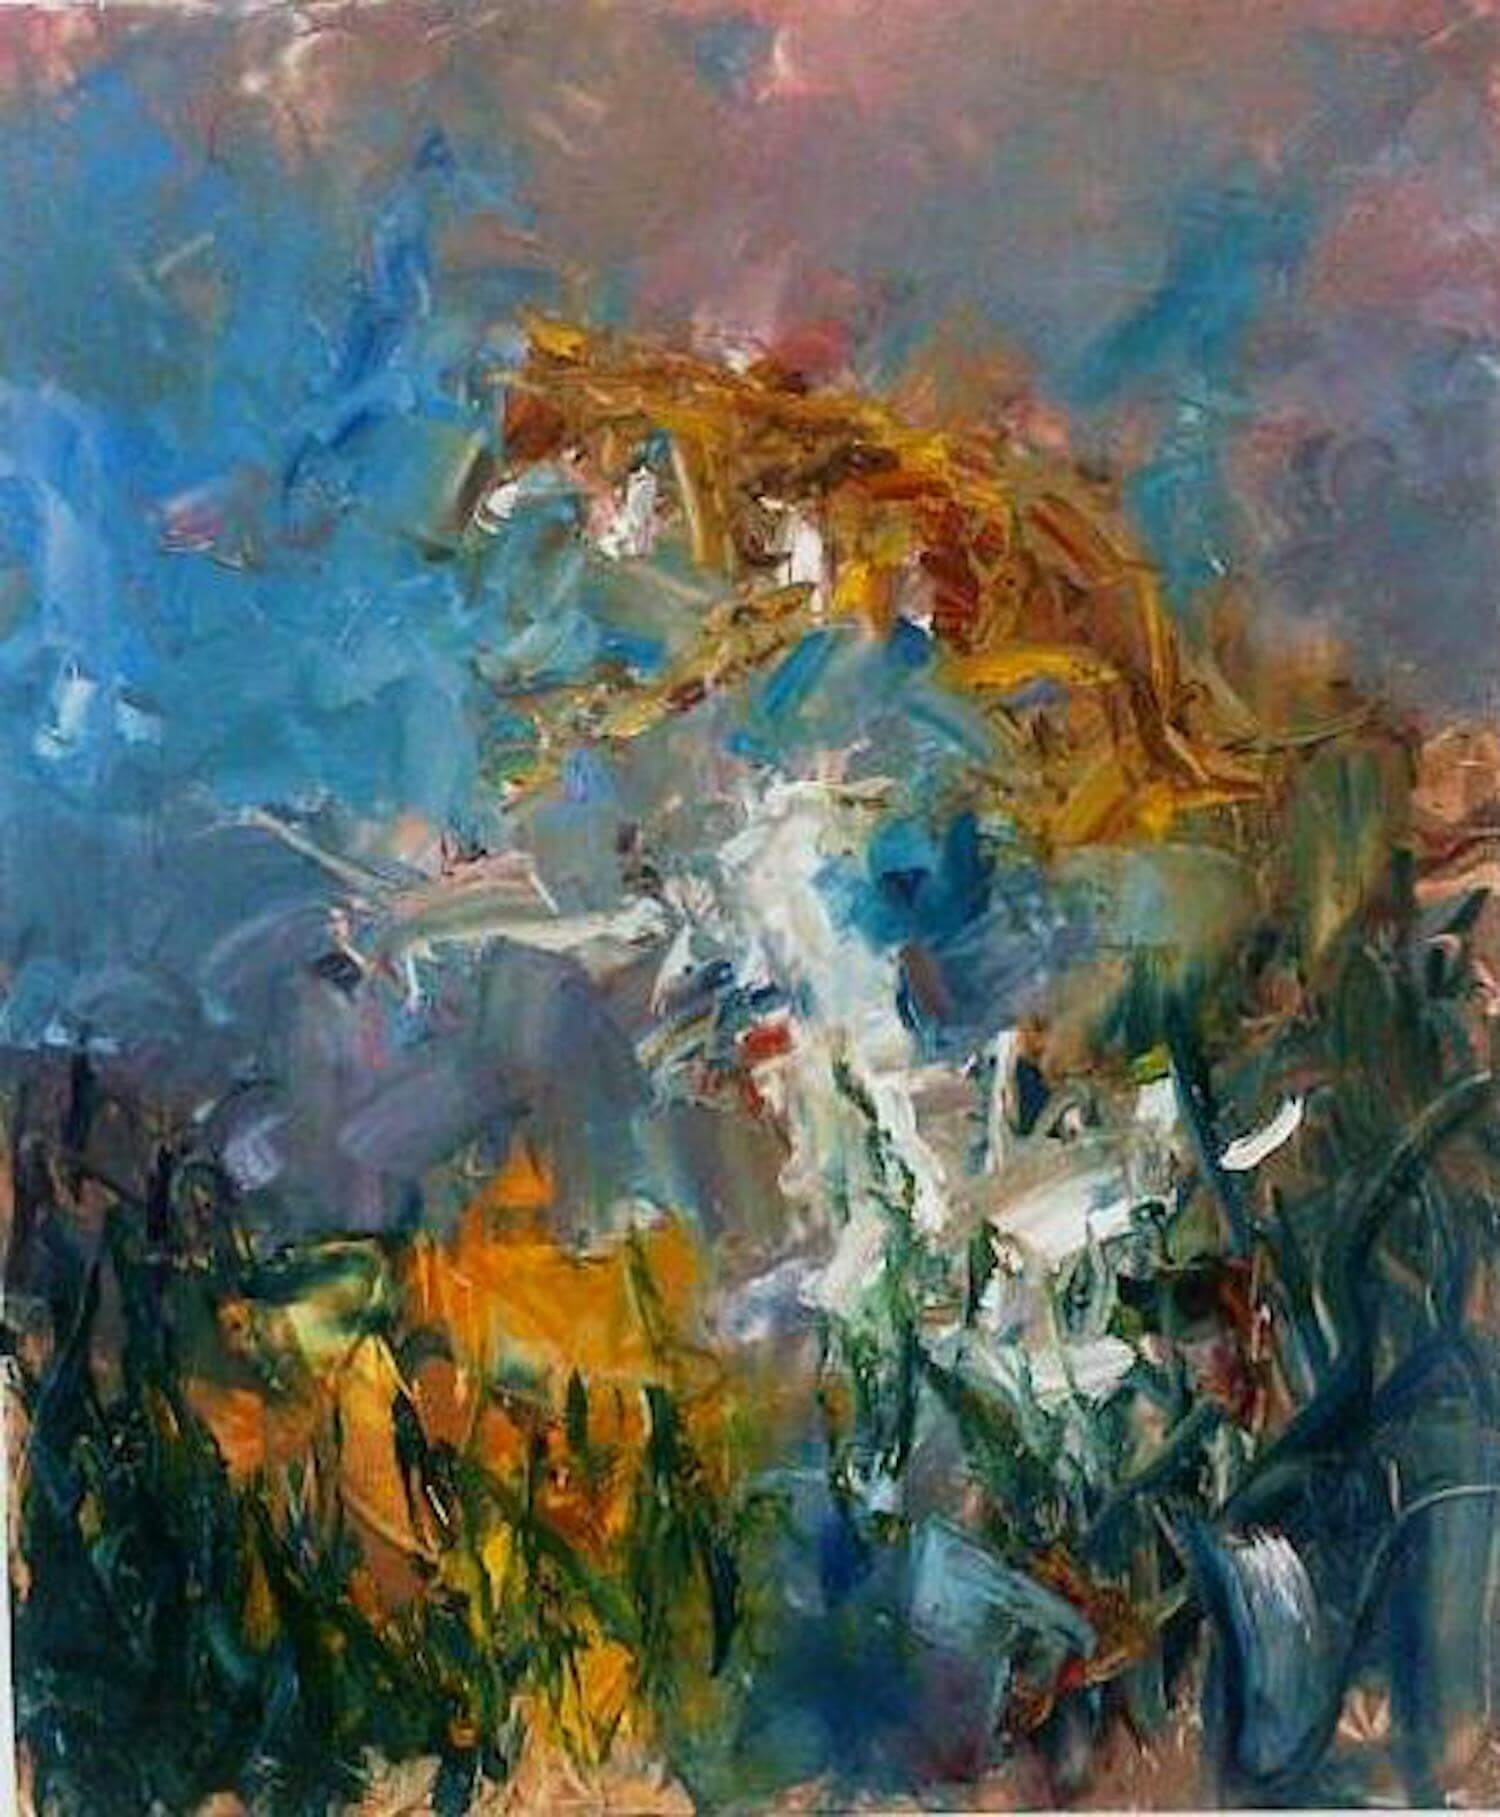 Myth of the mountain flying beast 2011 H180x150cm oil canvas